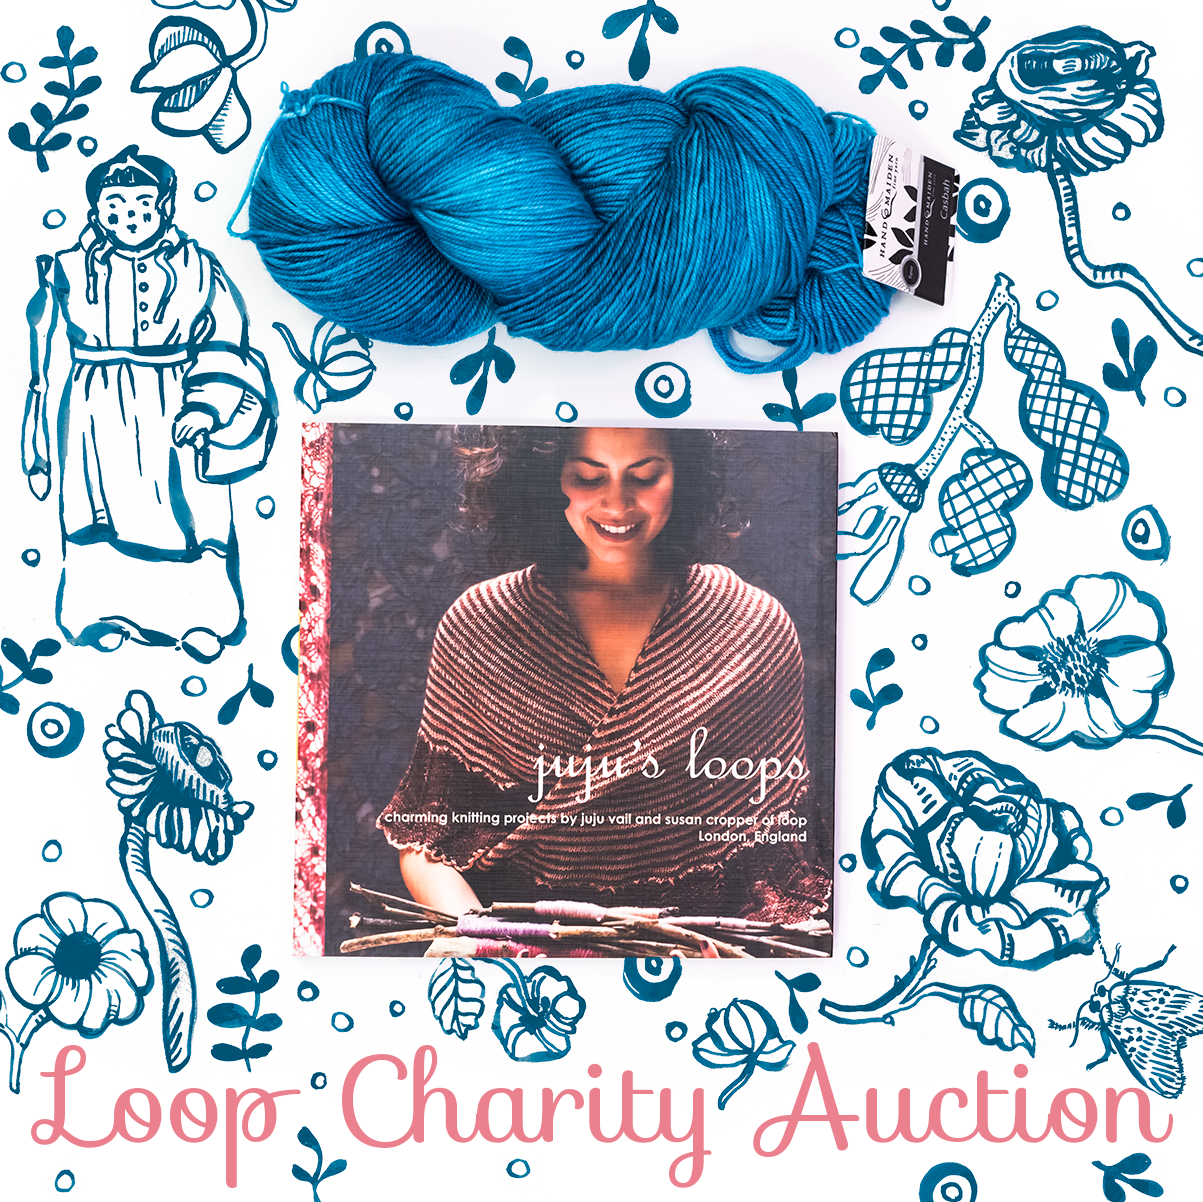 Charity Auction at Loop London